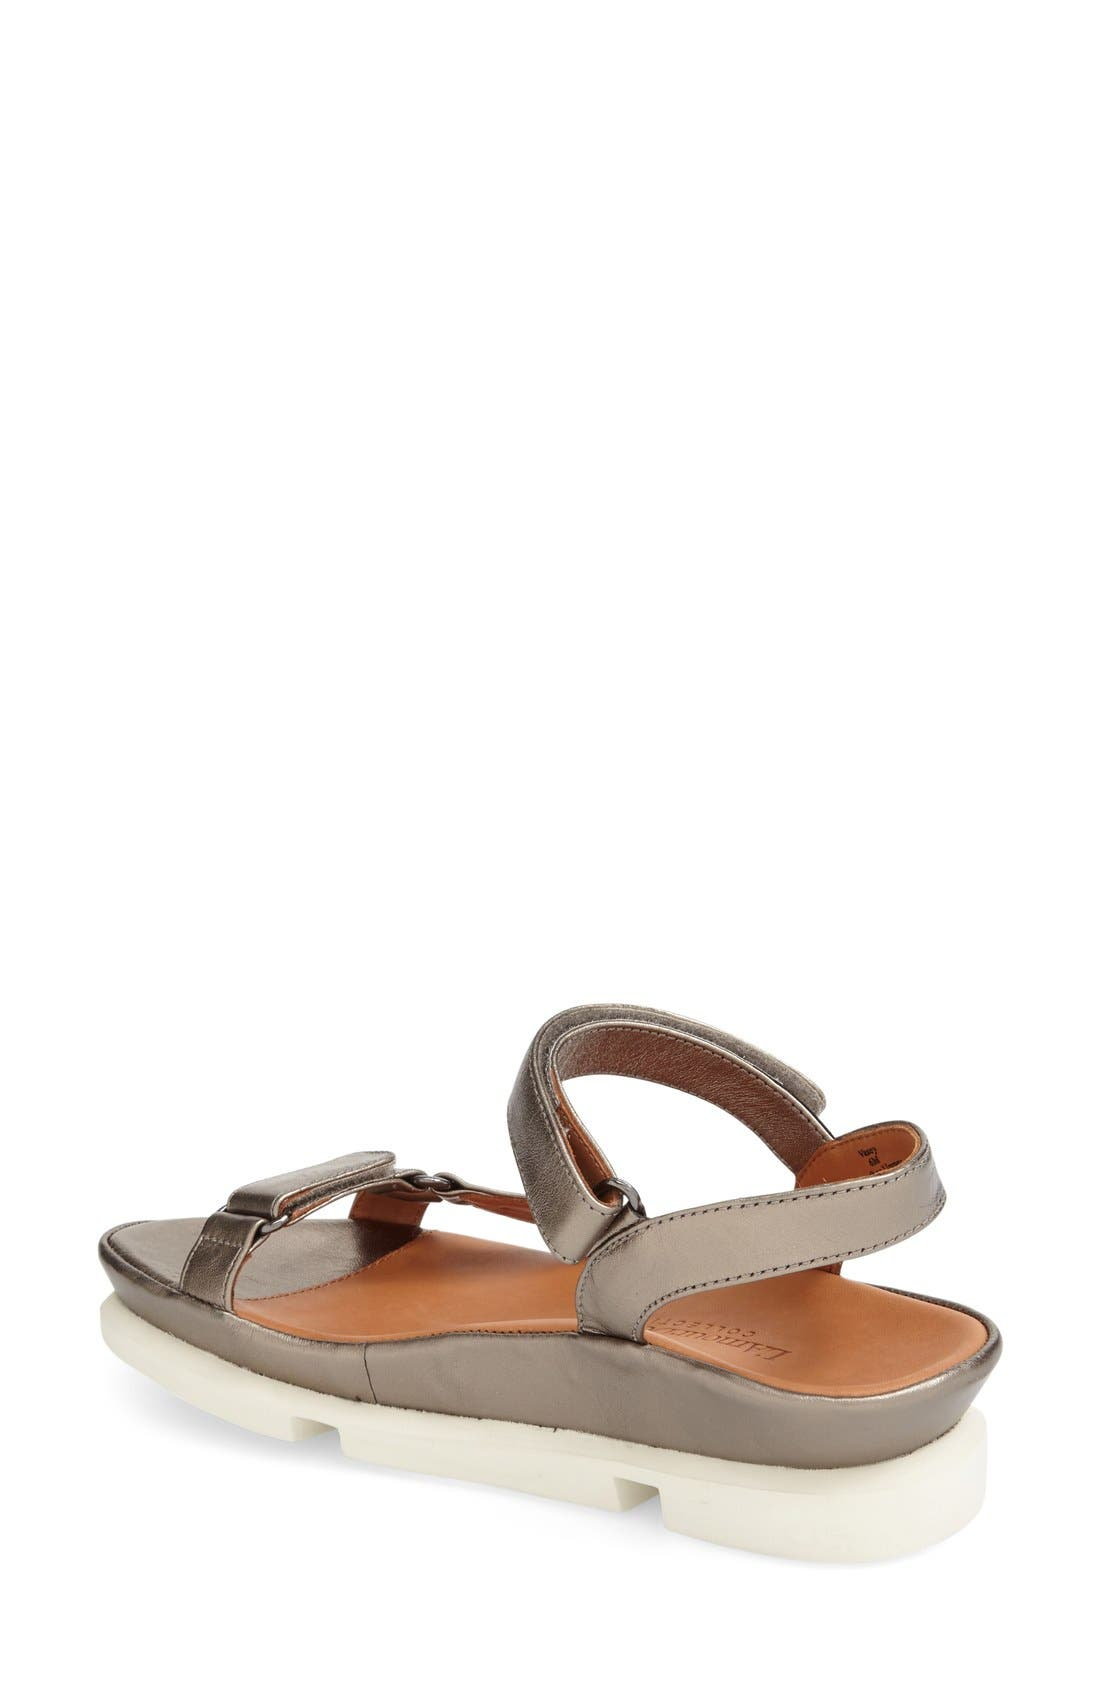 'Vasey' Sandal,                             Alternate thumbnail 2, color,                             060